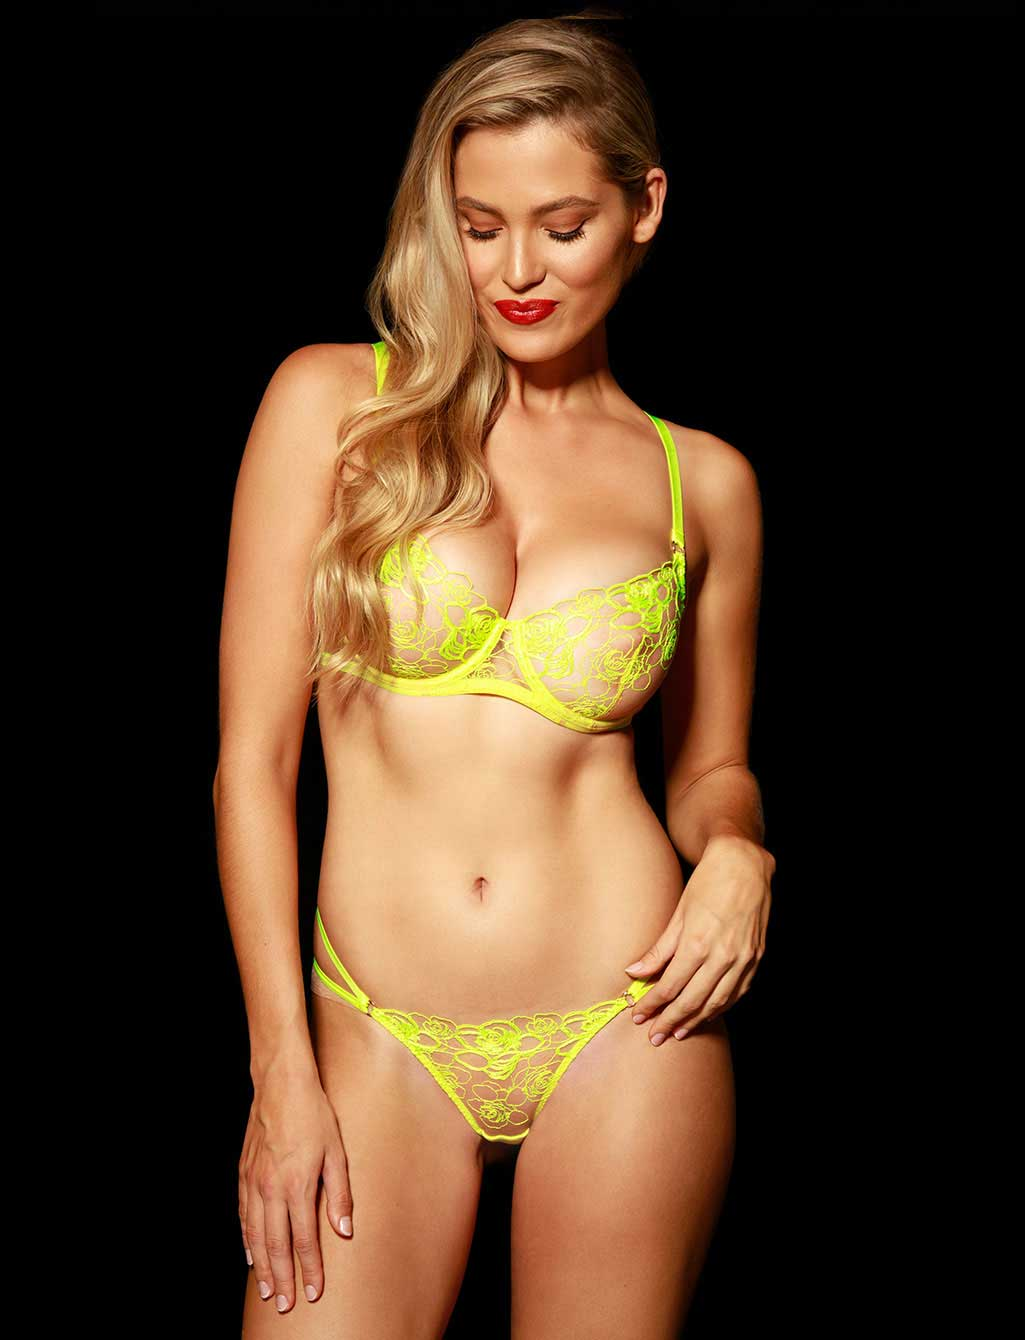 Lyndl Neon Lingerie Set | Shop  Lingerie Honey Birdette